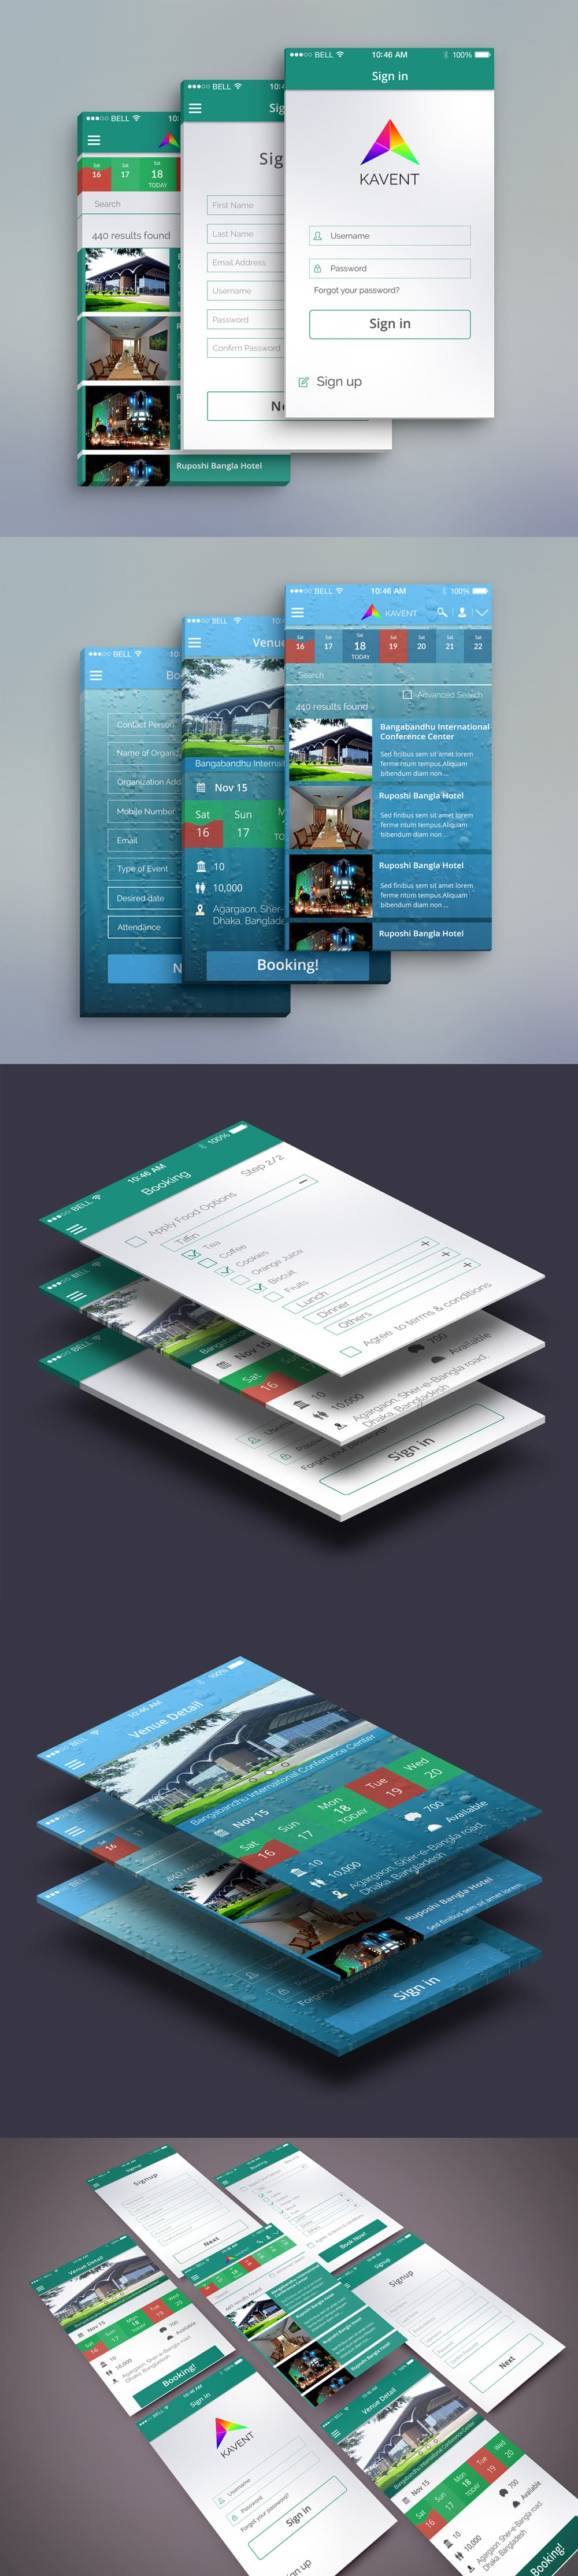 Event Mobile App UI PSD